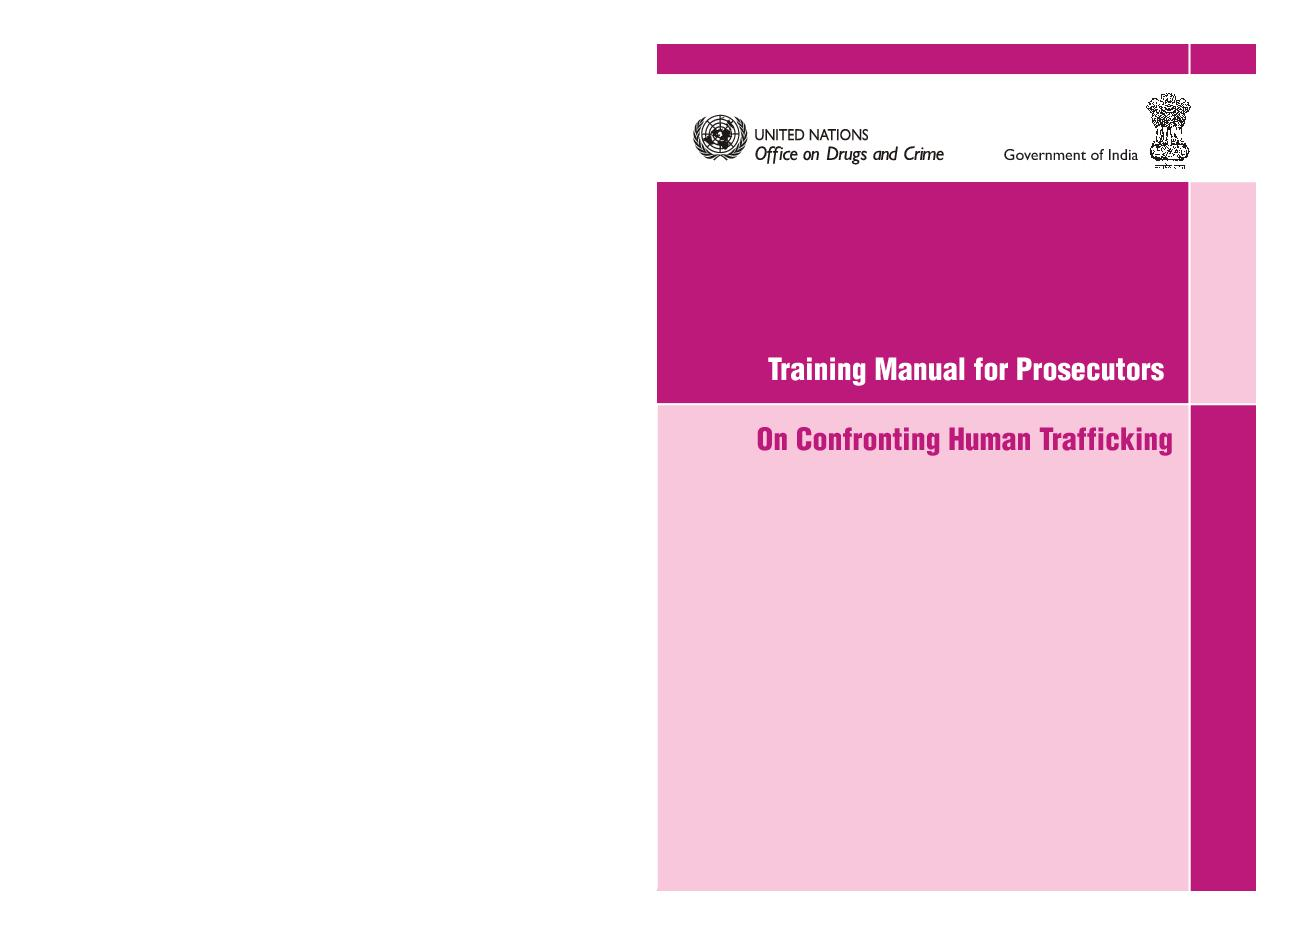 Training Manual for Prosecutors on Confronting Human Trafficking ...